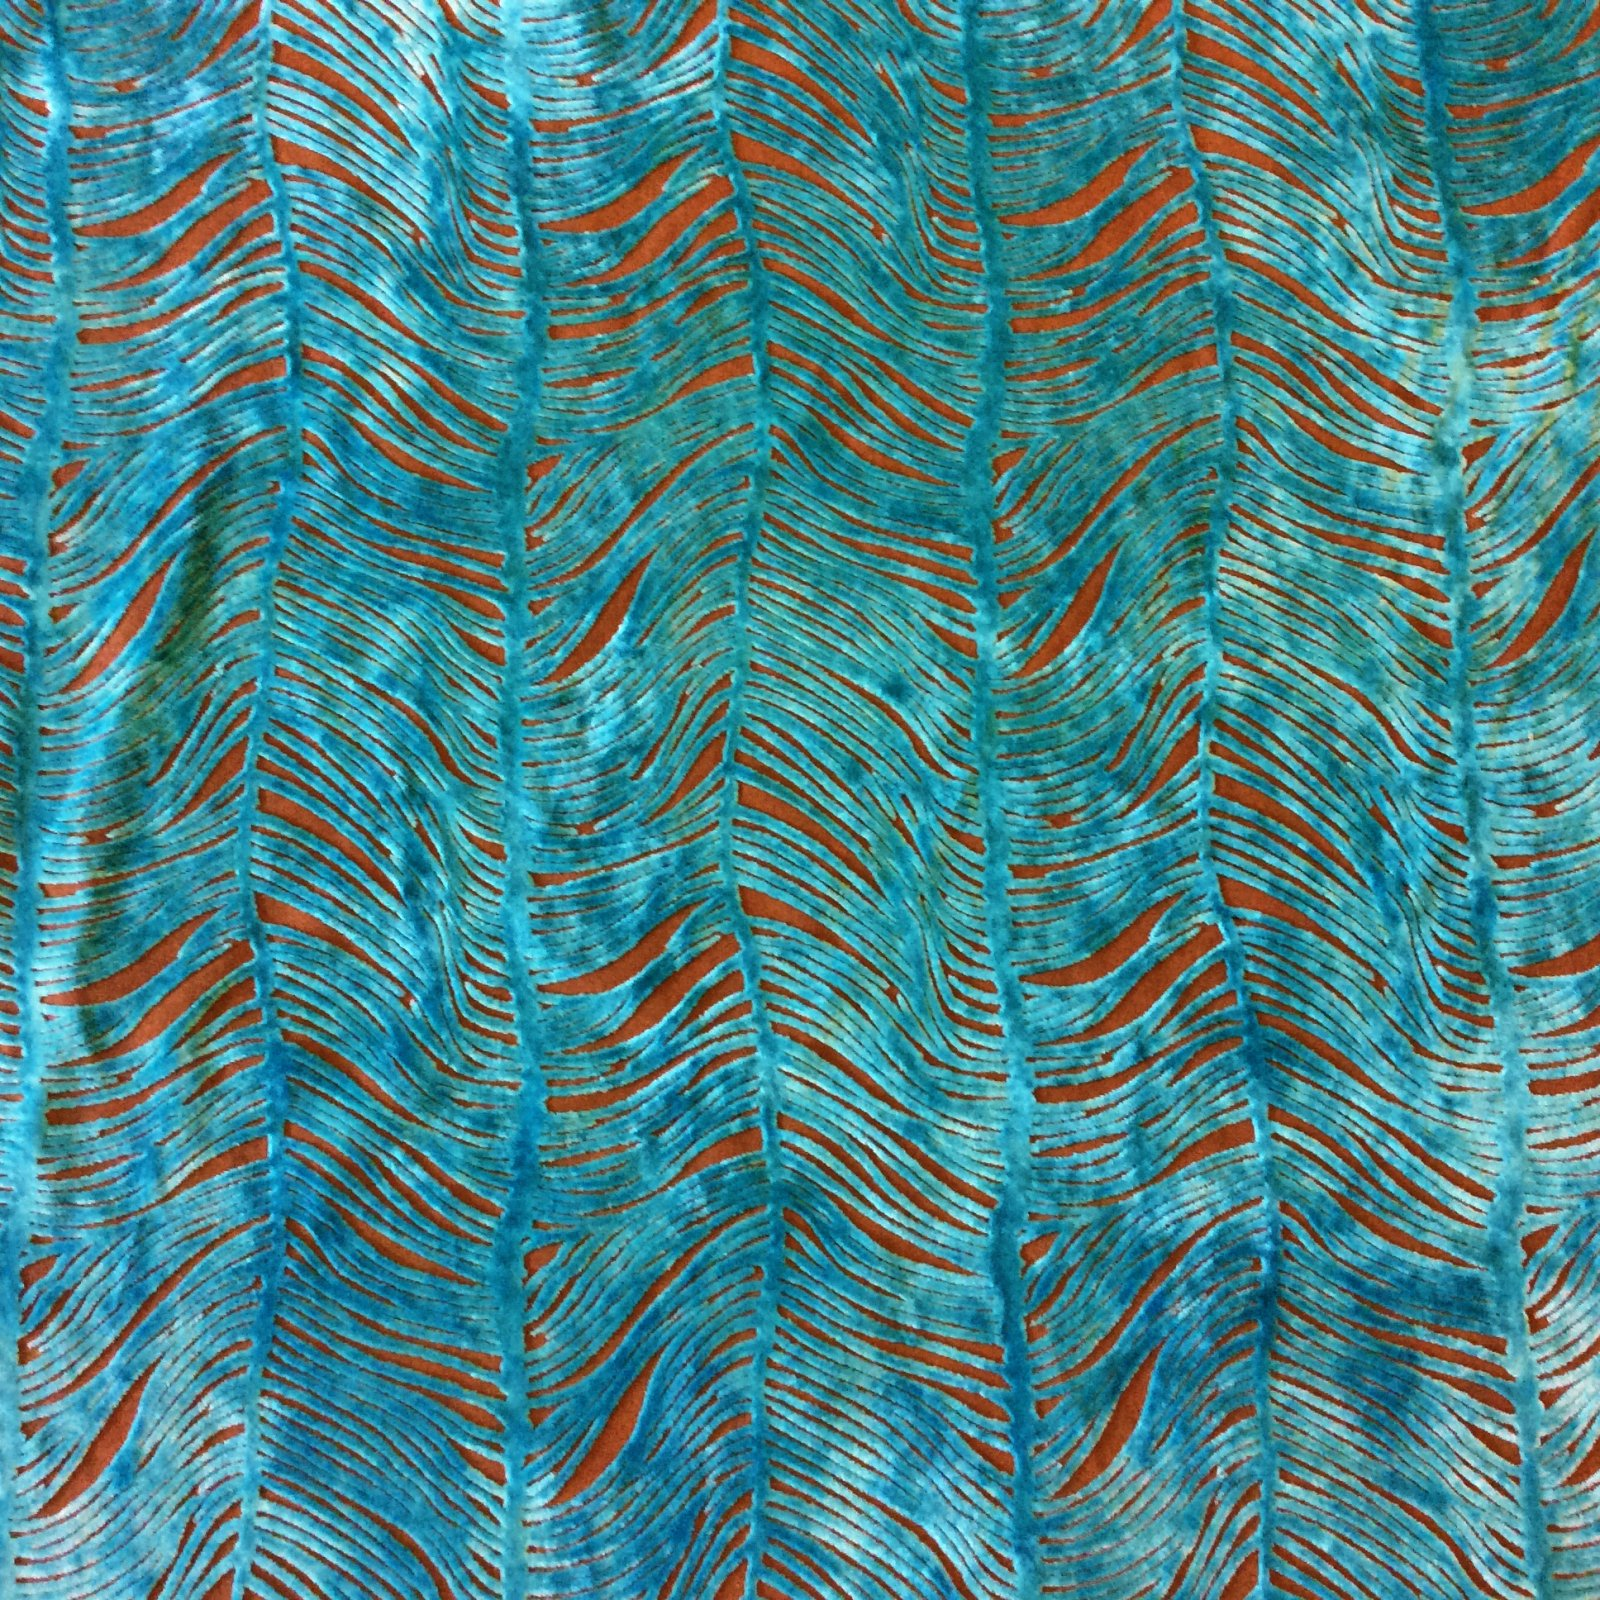 Peacock Plume Luxurious Cut Velvet Turquoise Blue Heavy Velvet Upholstery Fabric LHD151-A